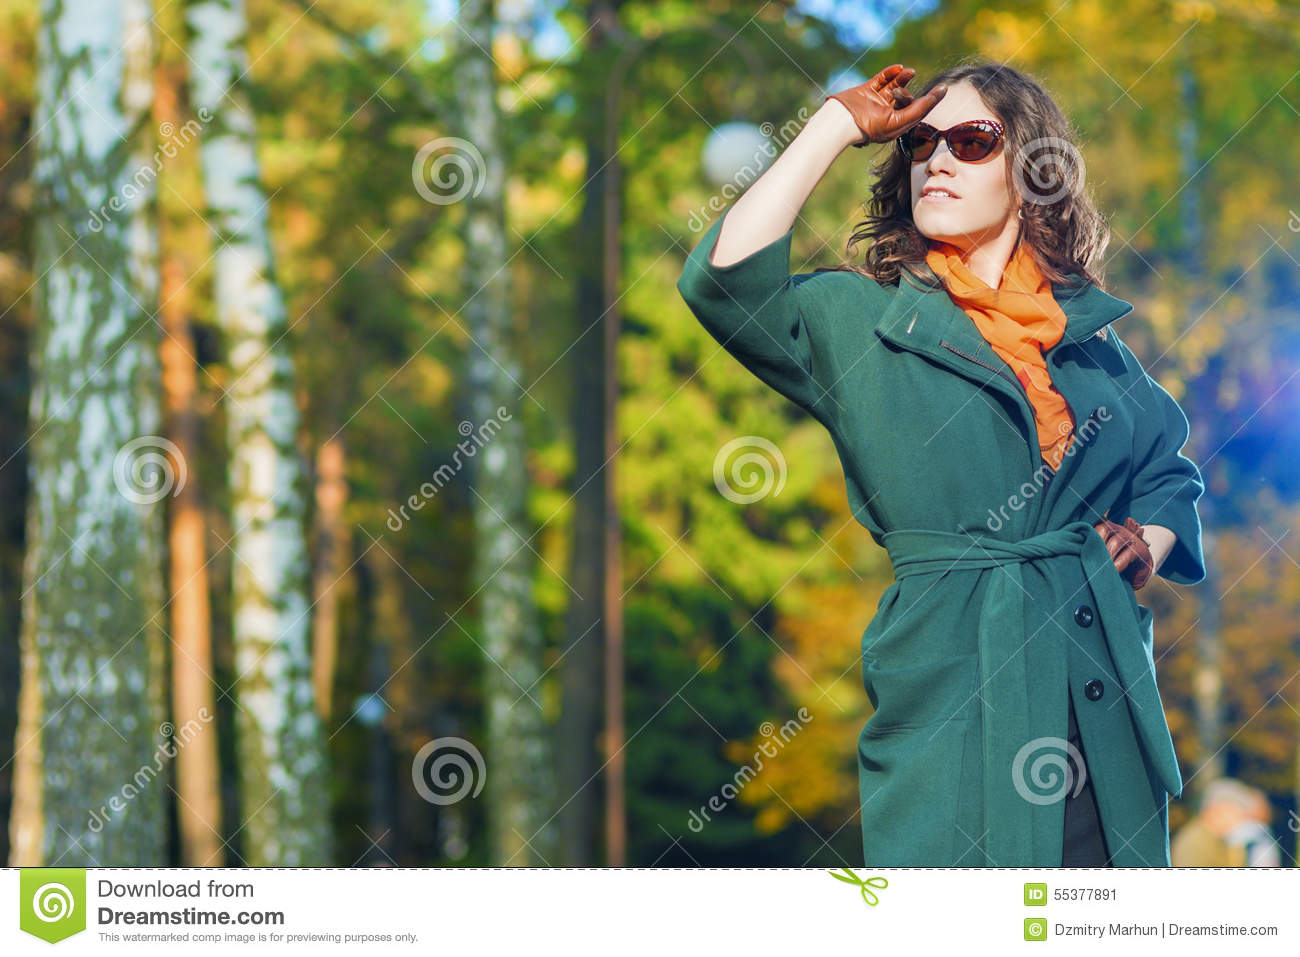 Fashion And Style Concept And Ideas Good Looking Caucasian Female Model In Green Coat Posing With Sunglasses In Autumn Forest Stock Image Image Of Nature Fashion 55377891